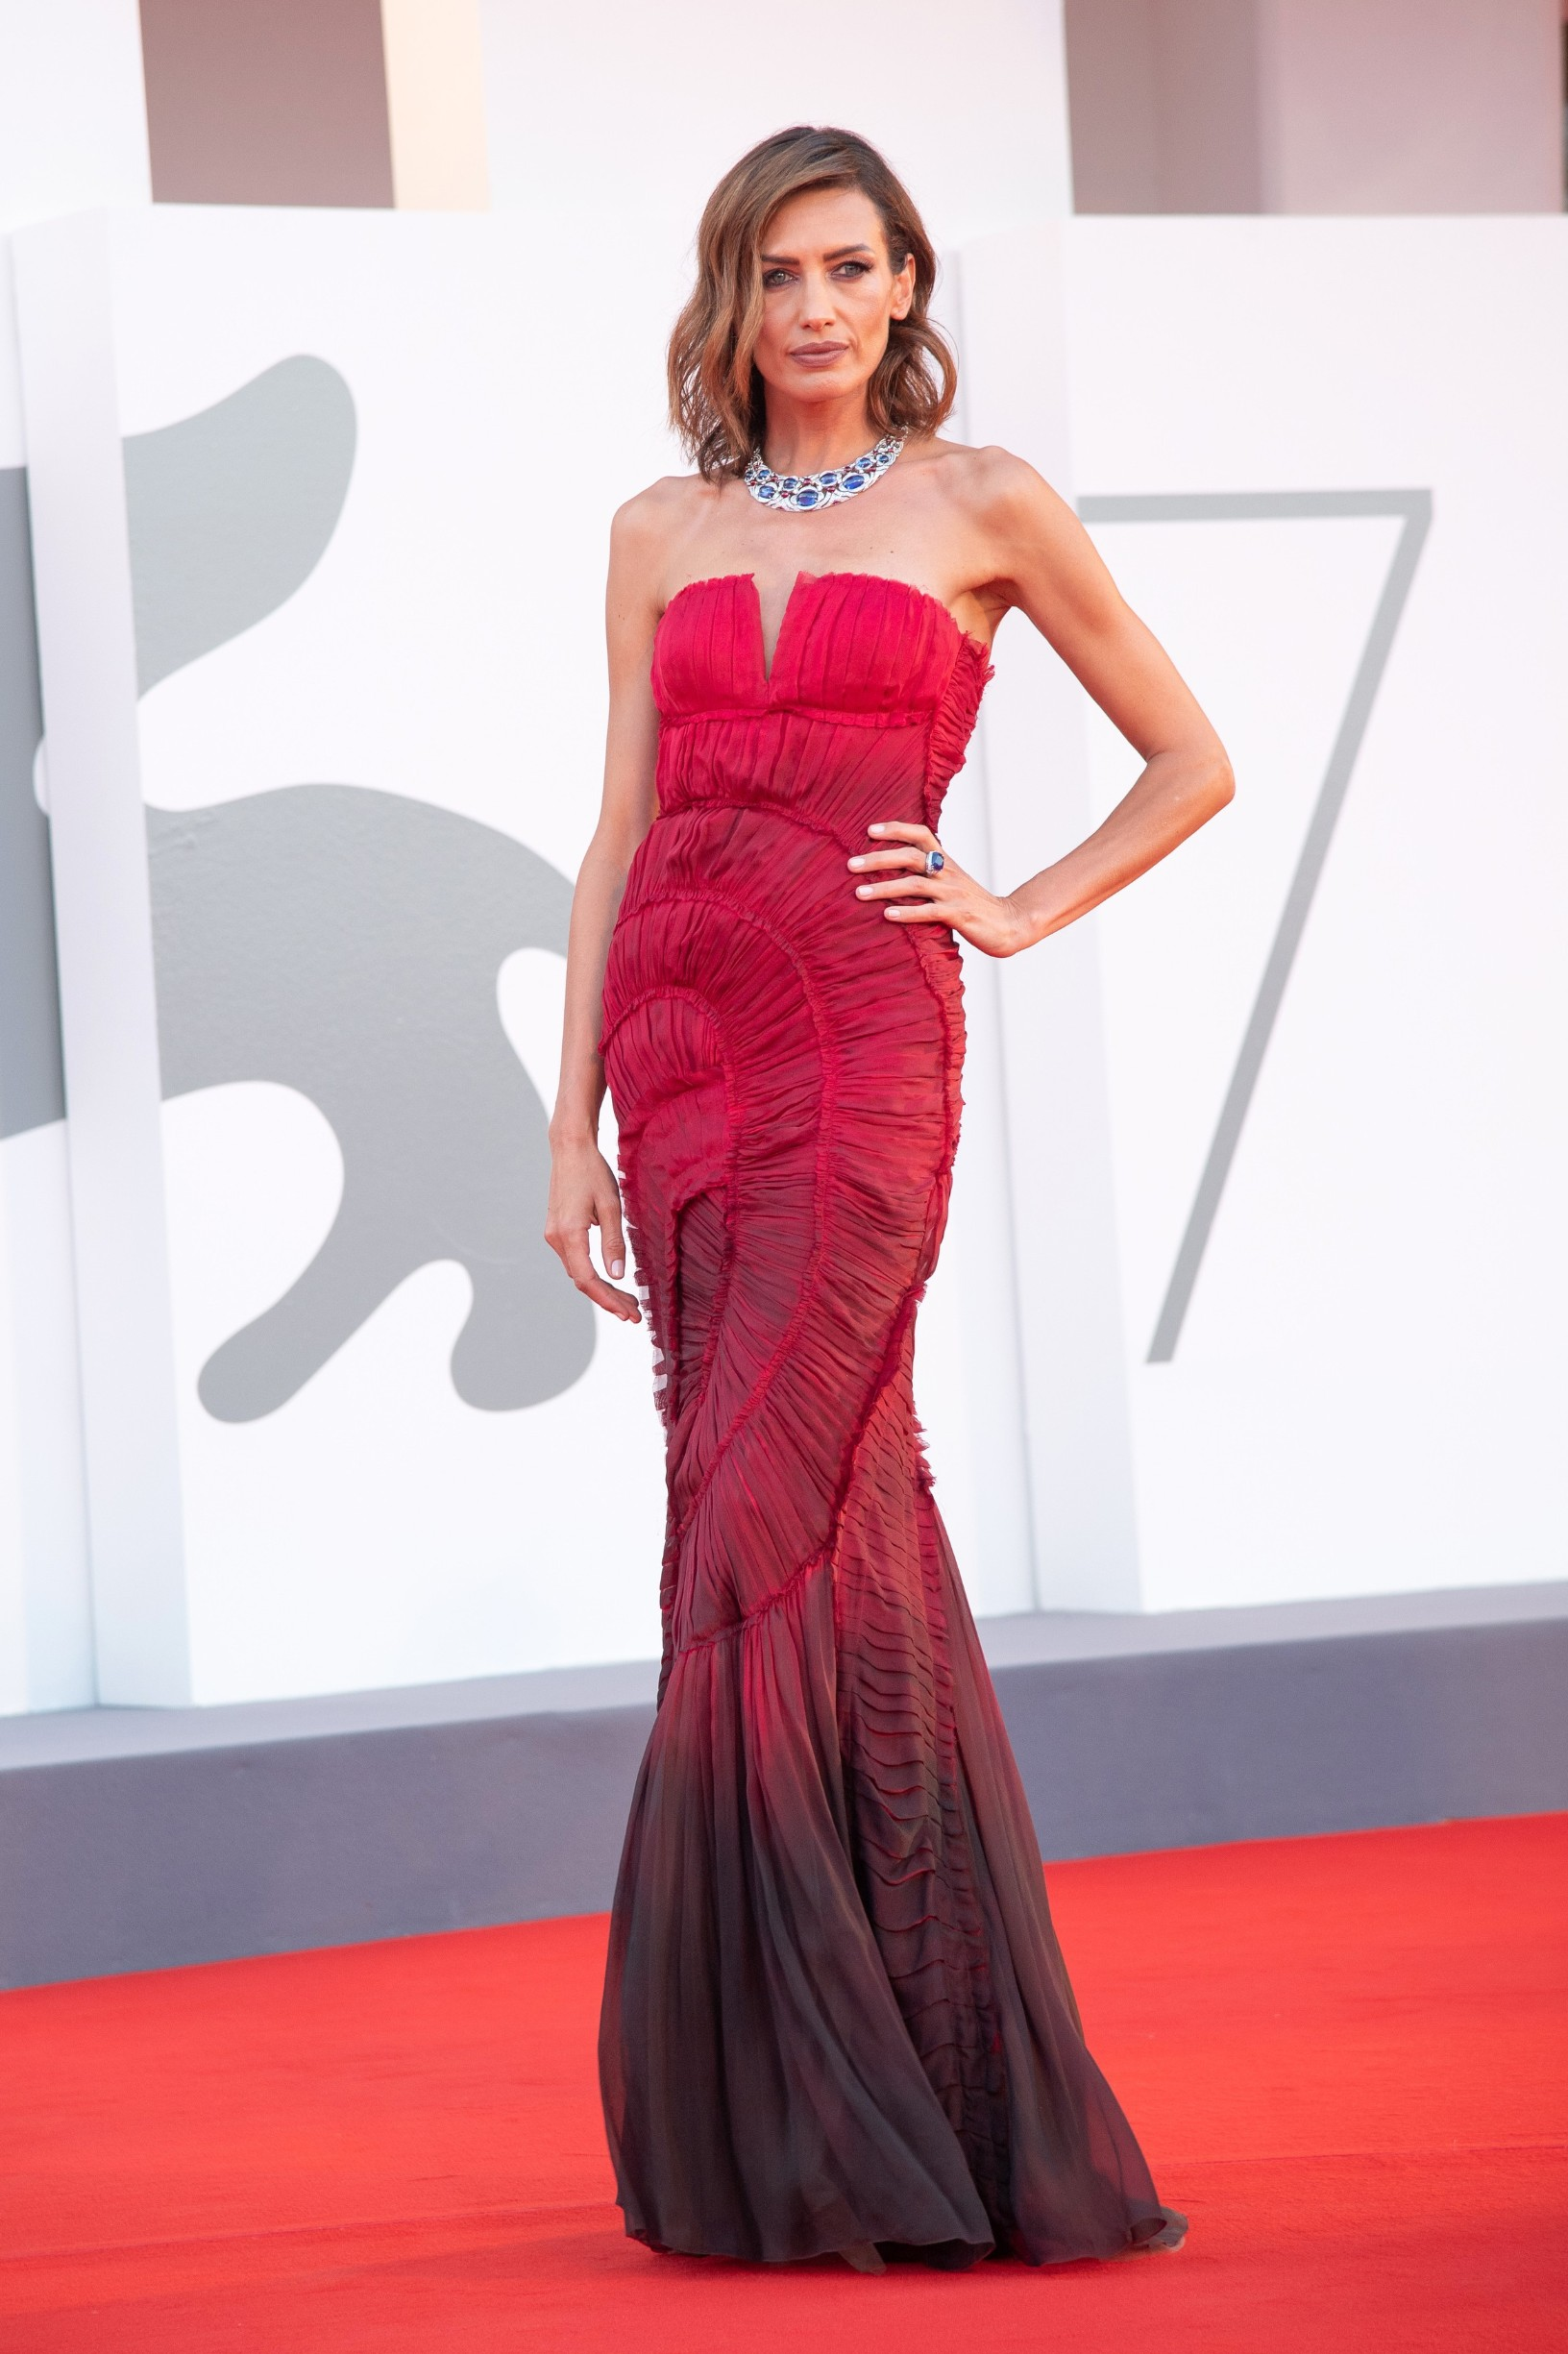 September 5, 2020, Venice, Italy: Nieves Alvarez, Padrenostro Premiere, 77th Venice Film Festival in Venice, Italy on September 04, 2020. Photo by Ron Crusow,Image: 556351455, License: Rights-managed, Restrictions: , Model Release: no, Credit line: Imagespace / Zuma Press / Profimedia